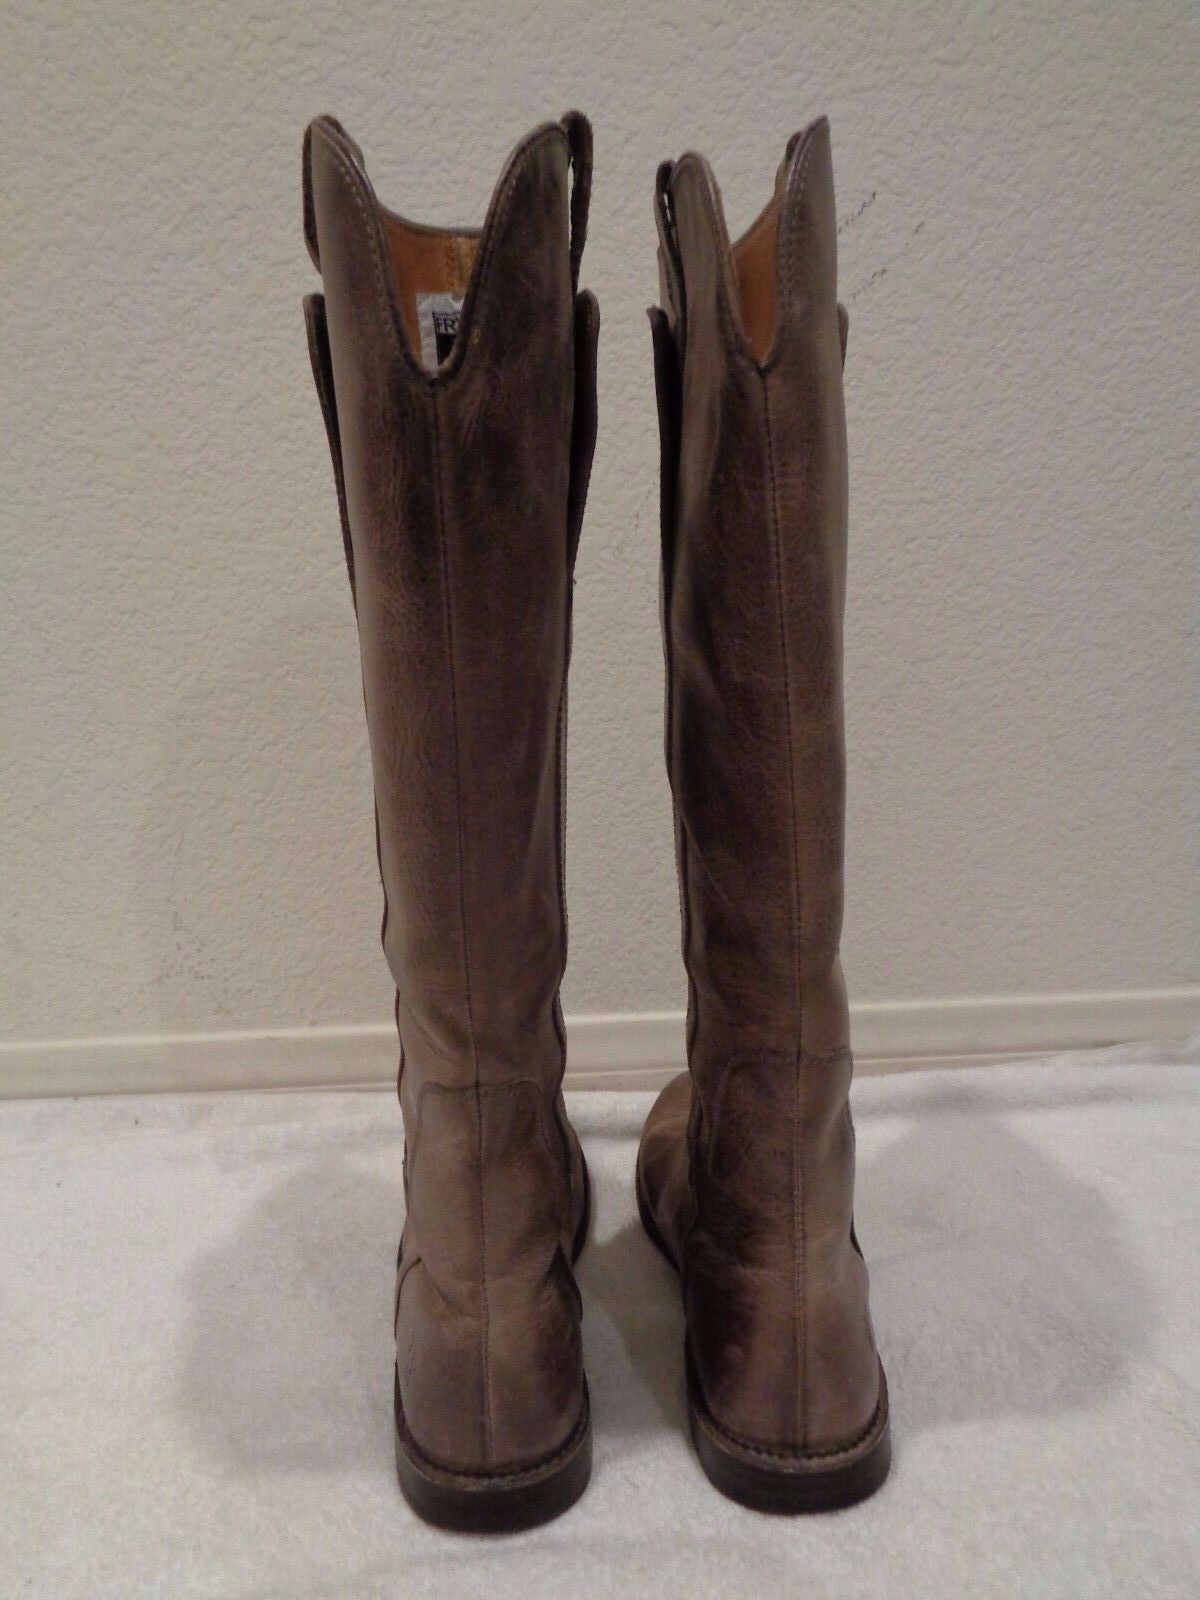 FRYE Paige taupe Braun gray Leder riding flat knee high tall Stiefel flat riding 6.5 f87f4b